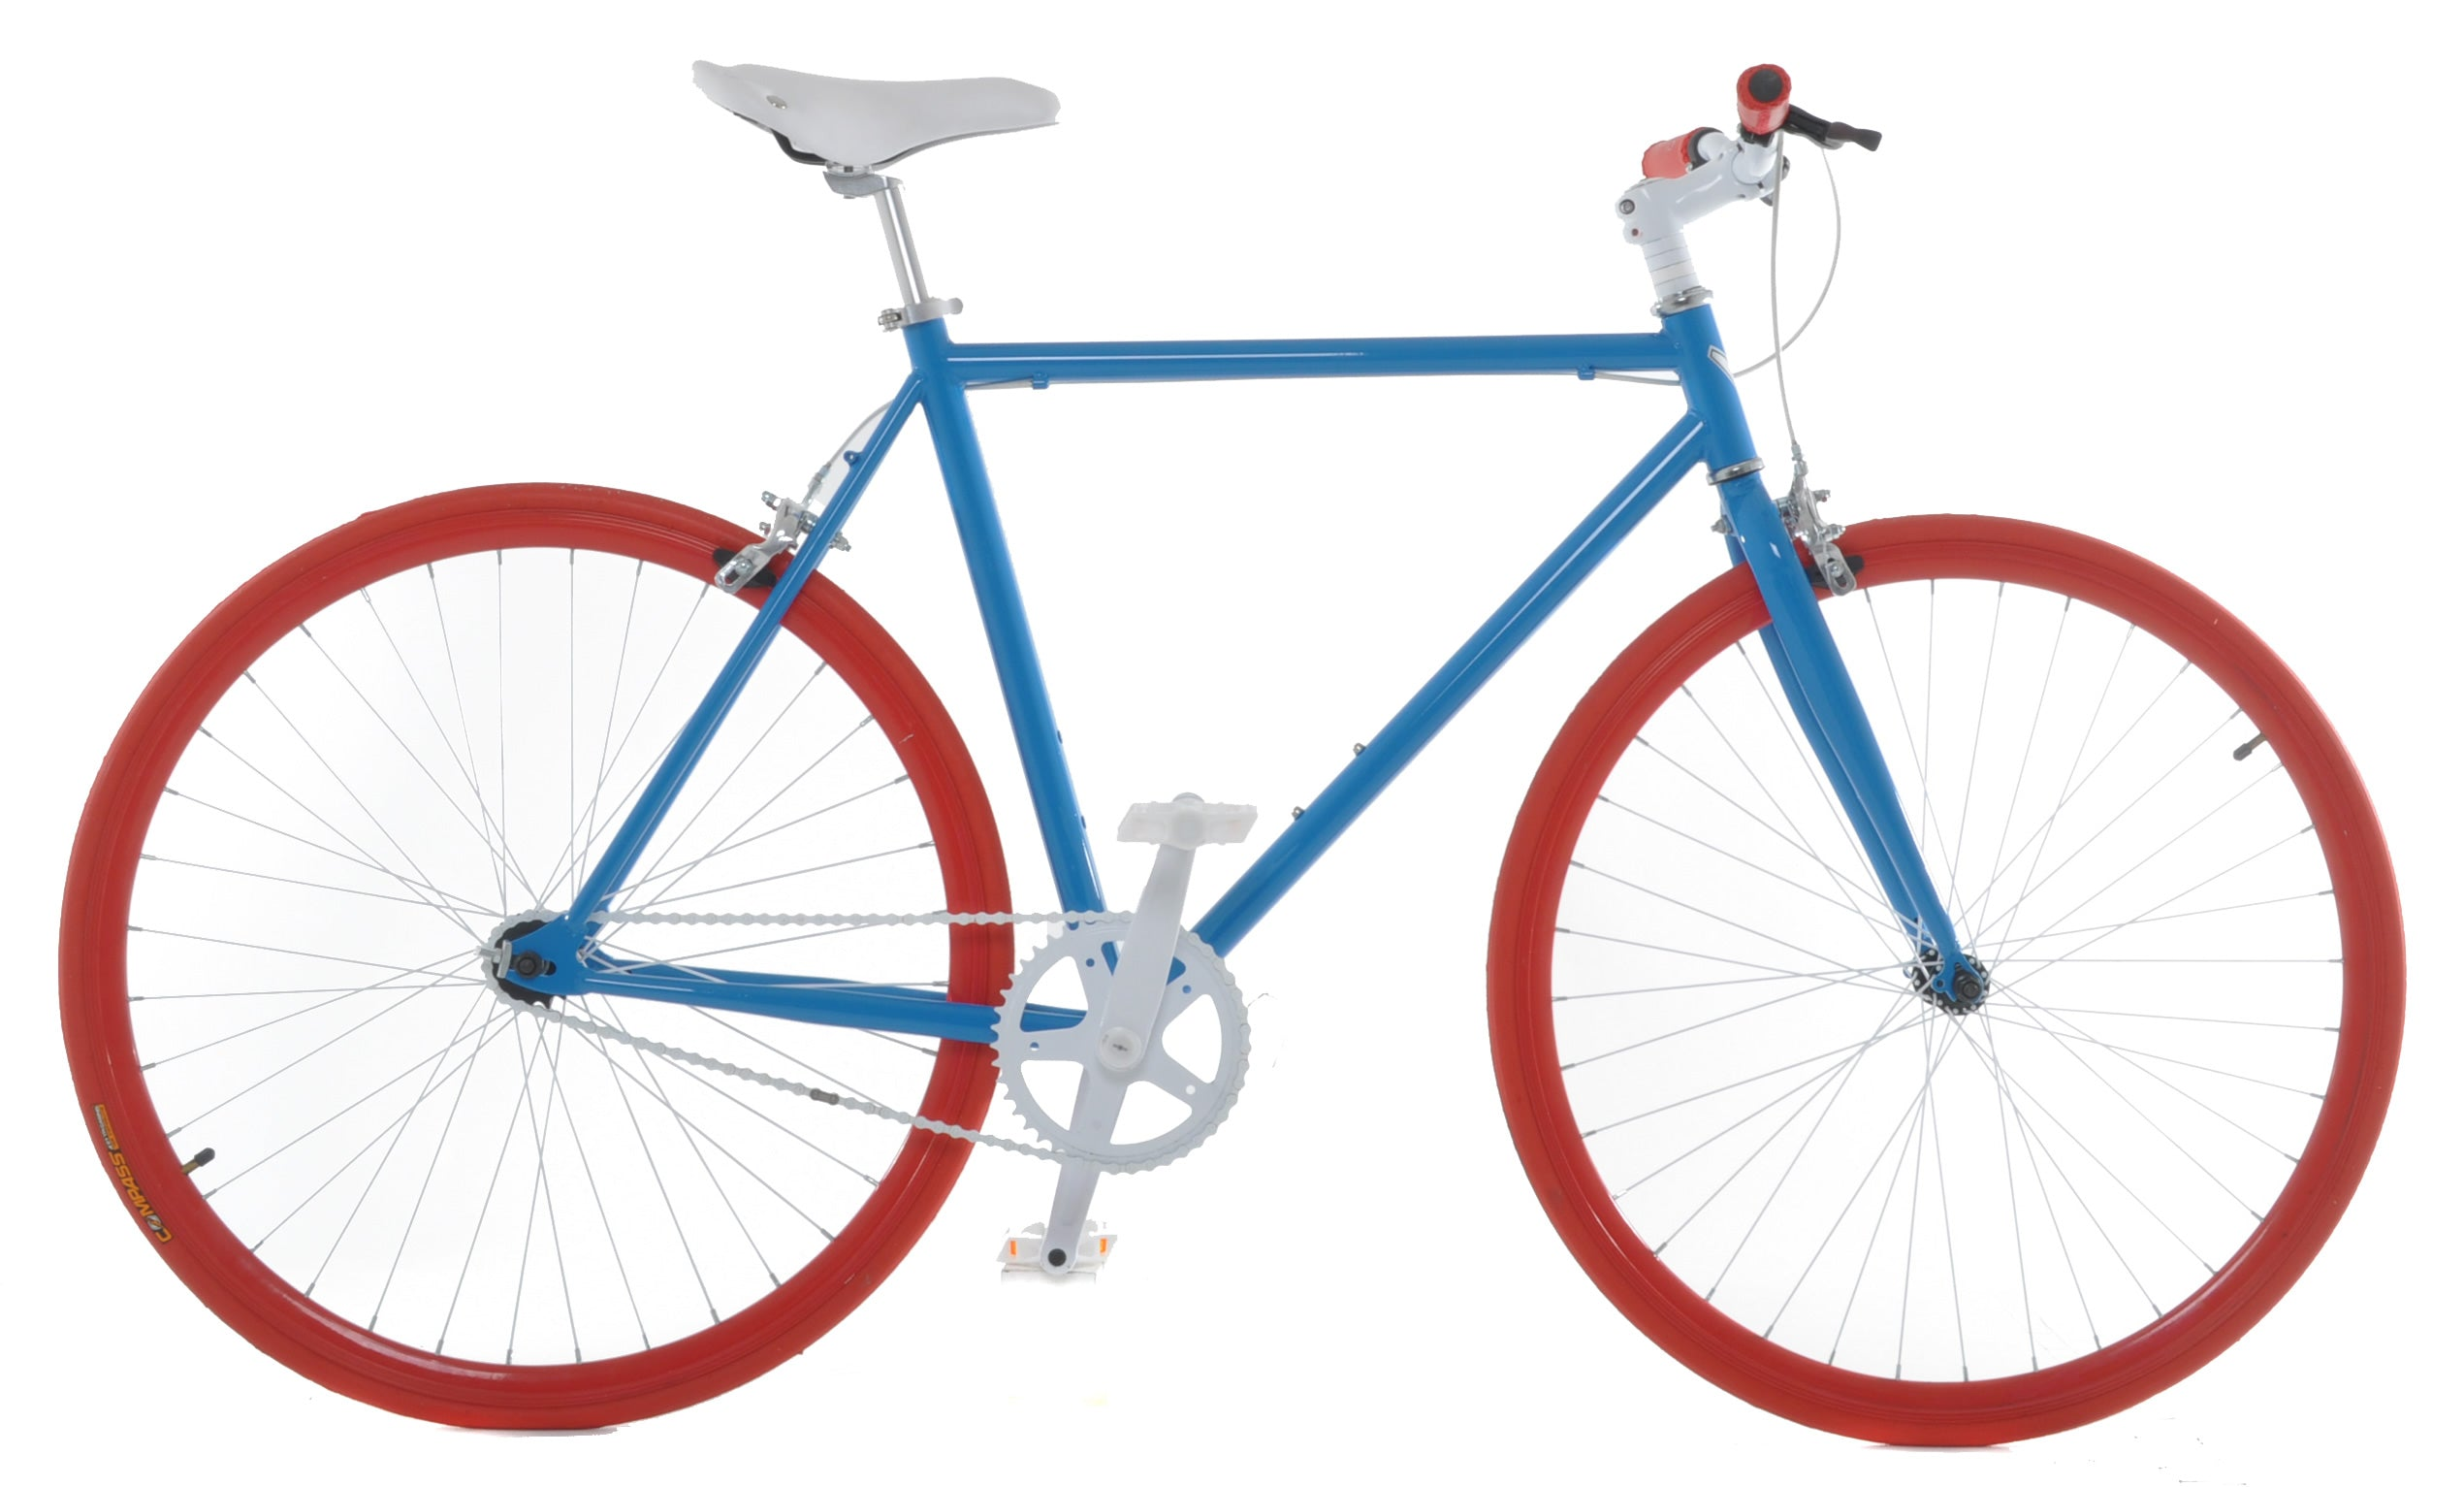 products/700-FIXIE-BLU-RED__01.jpg_1_4a9d2bcd-174a-40c6-89c4-d44ba5744b3b.jpg